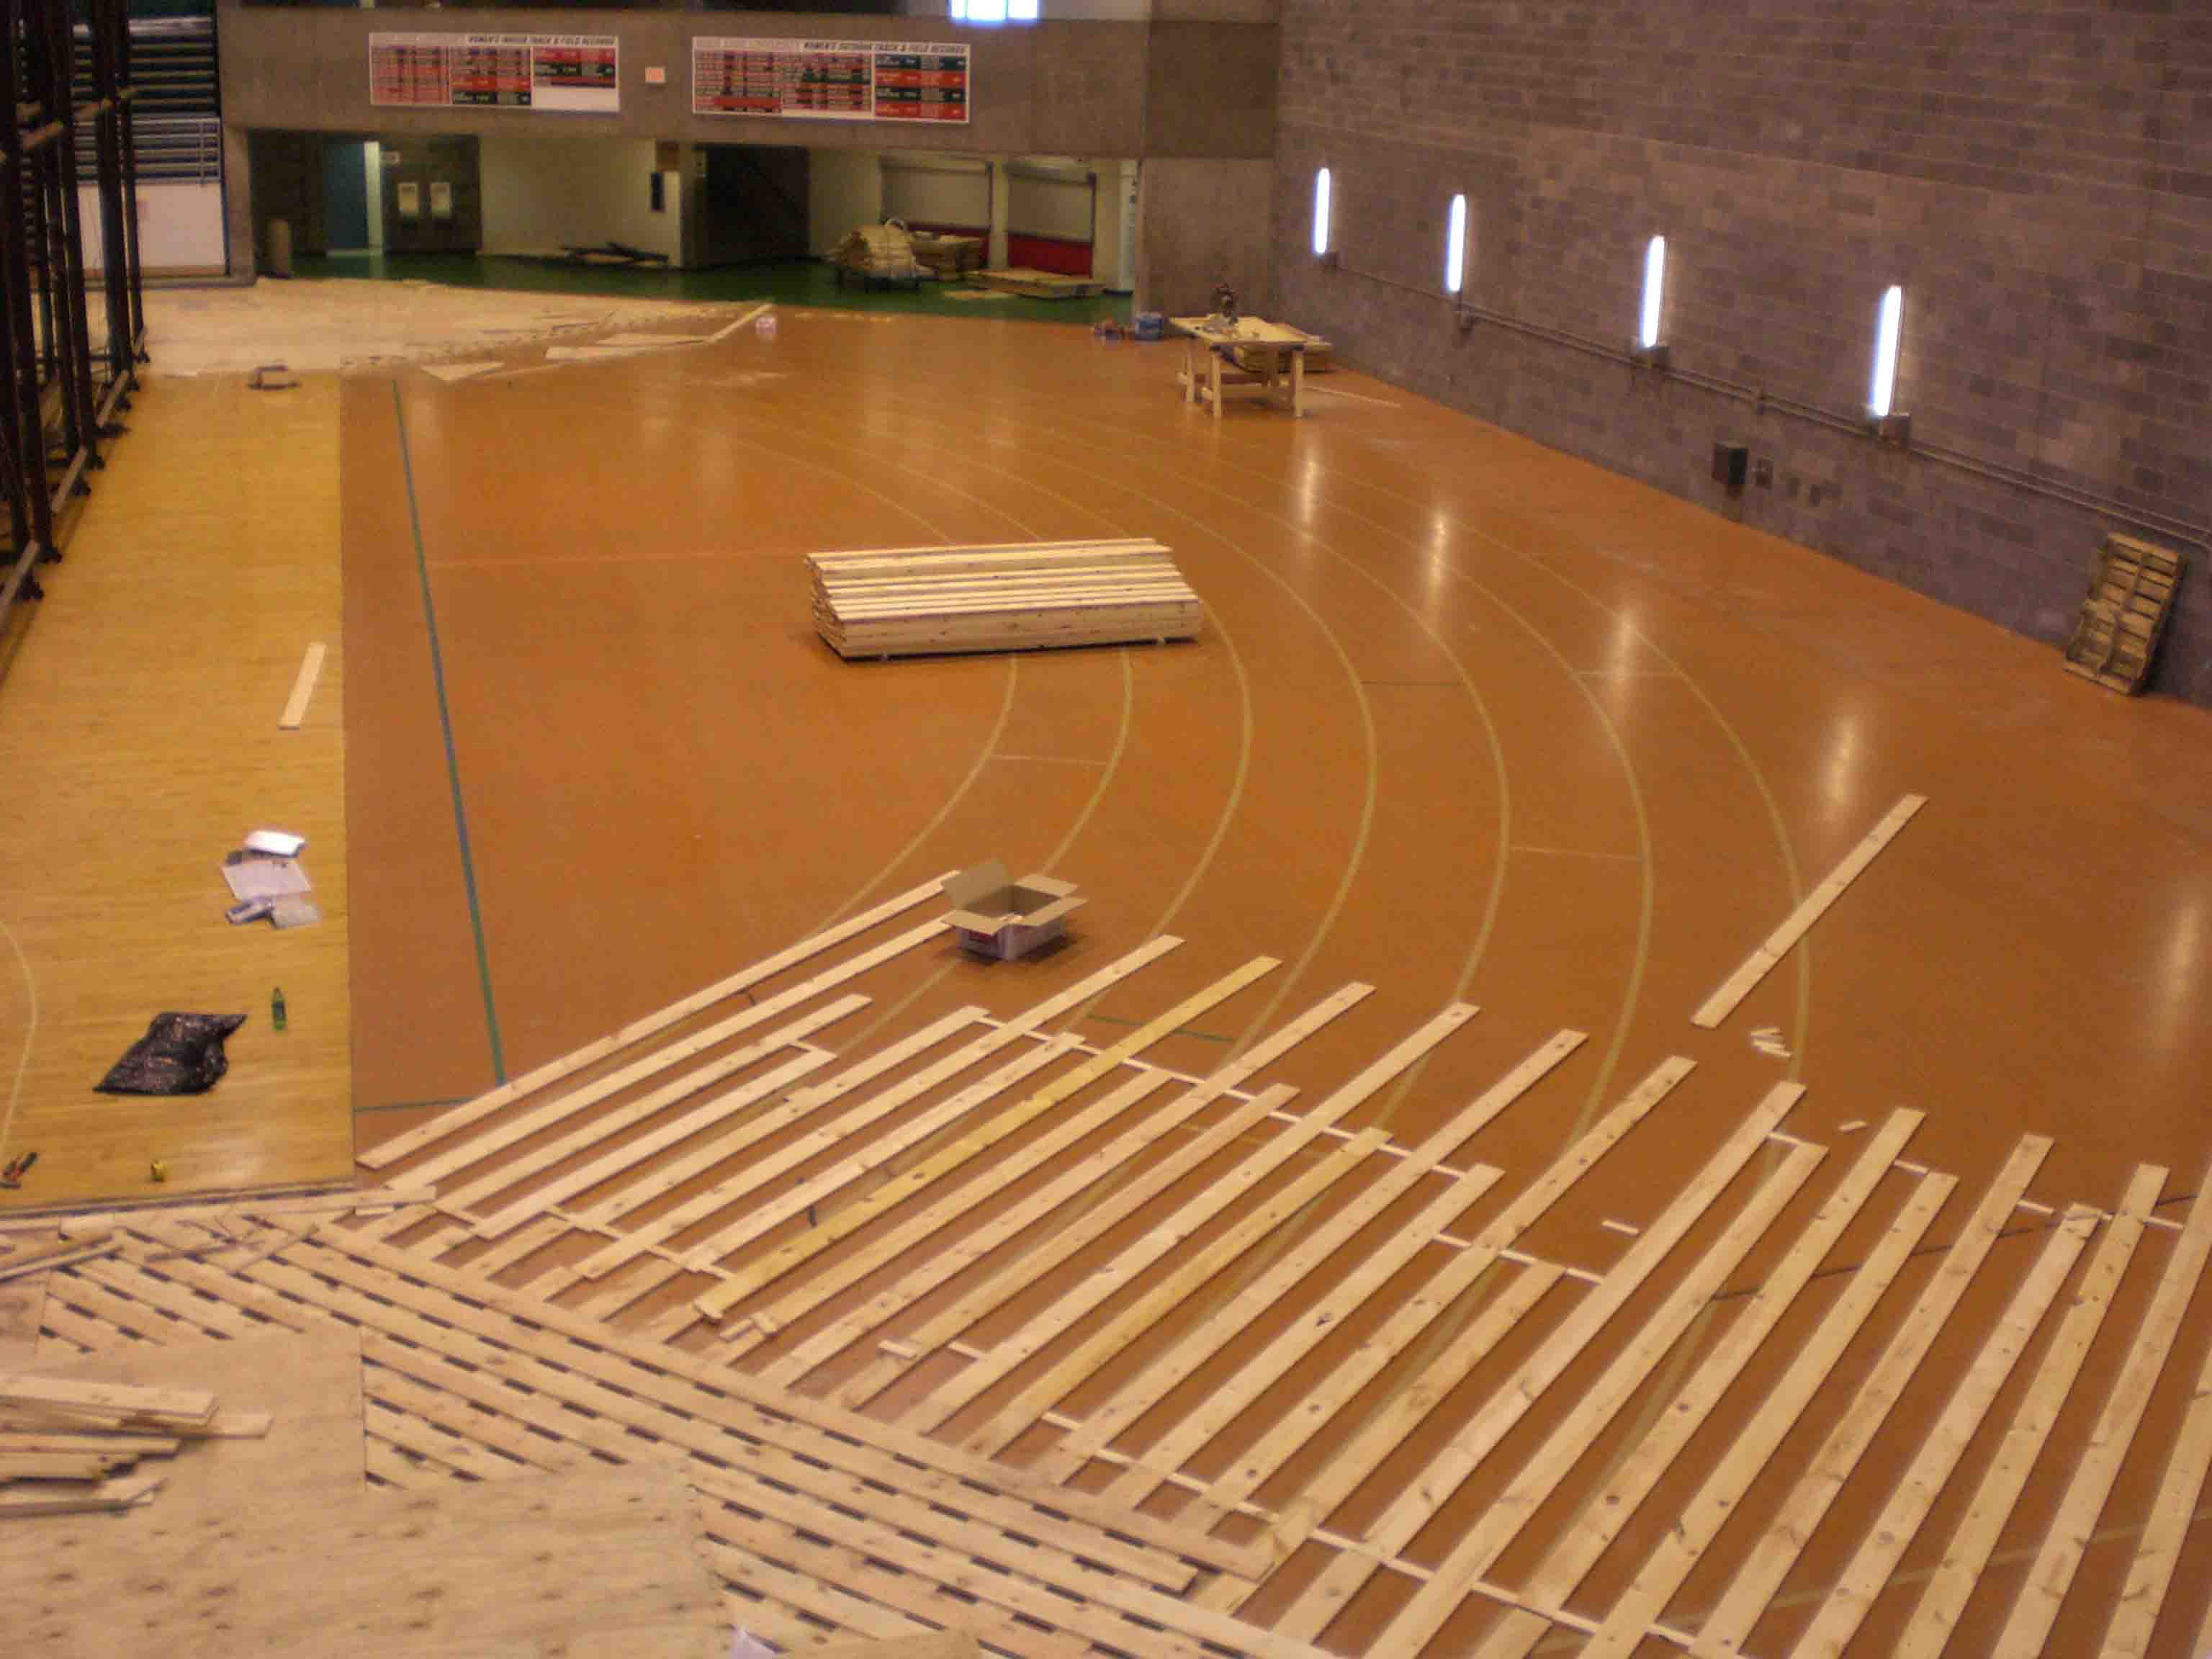 Basketball court construction indoor basketball court Basketball court installation cost